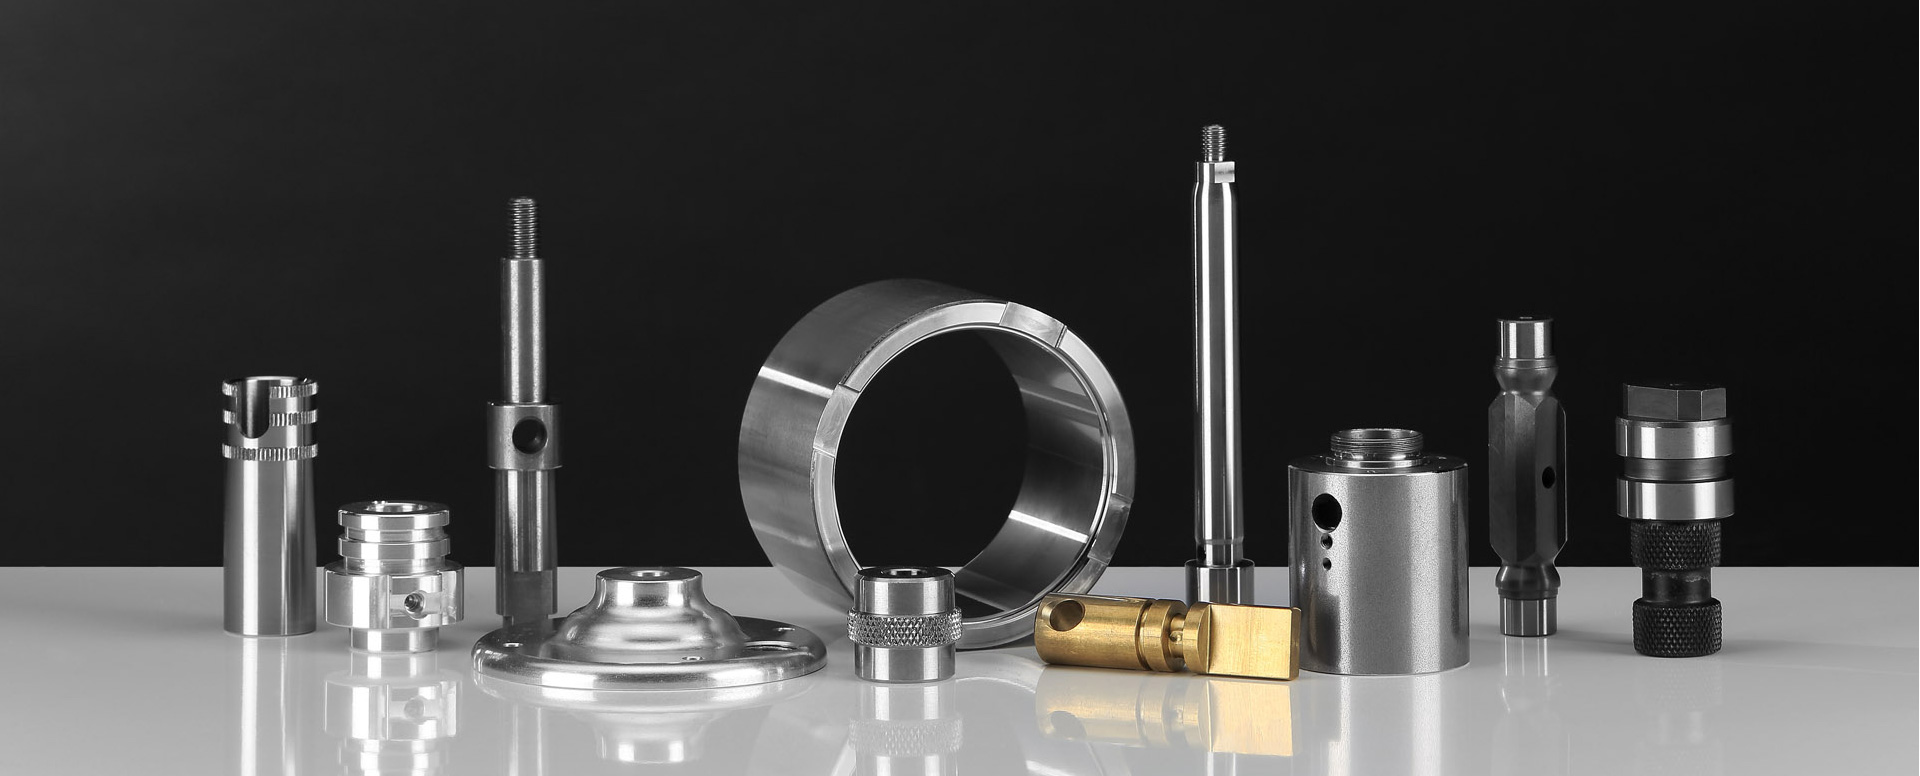 Precision machining of series parts according to plan